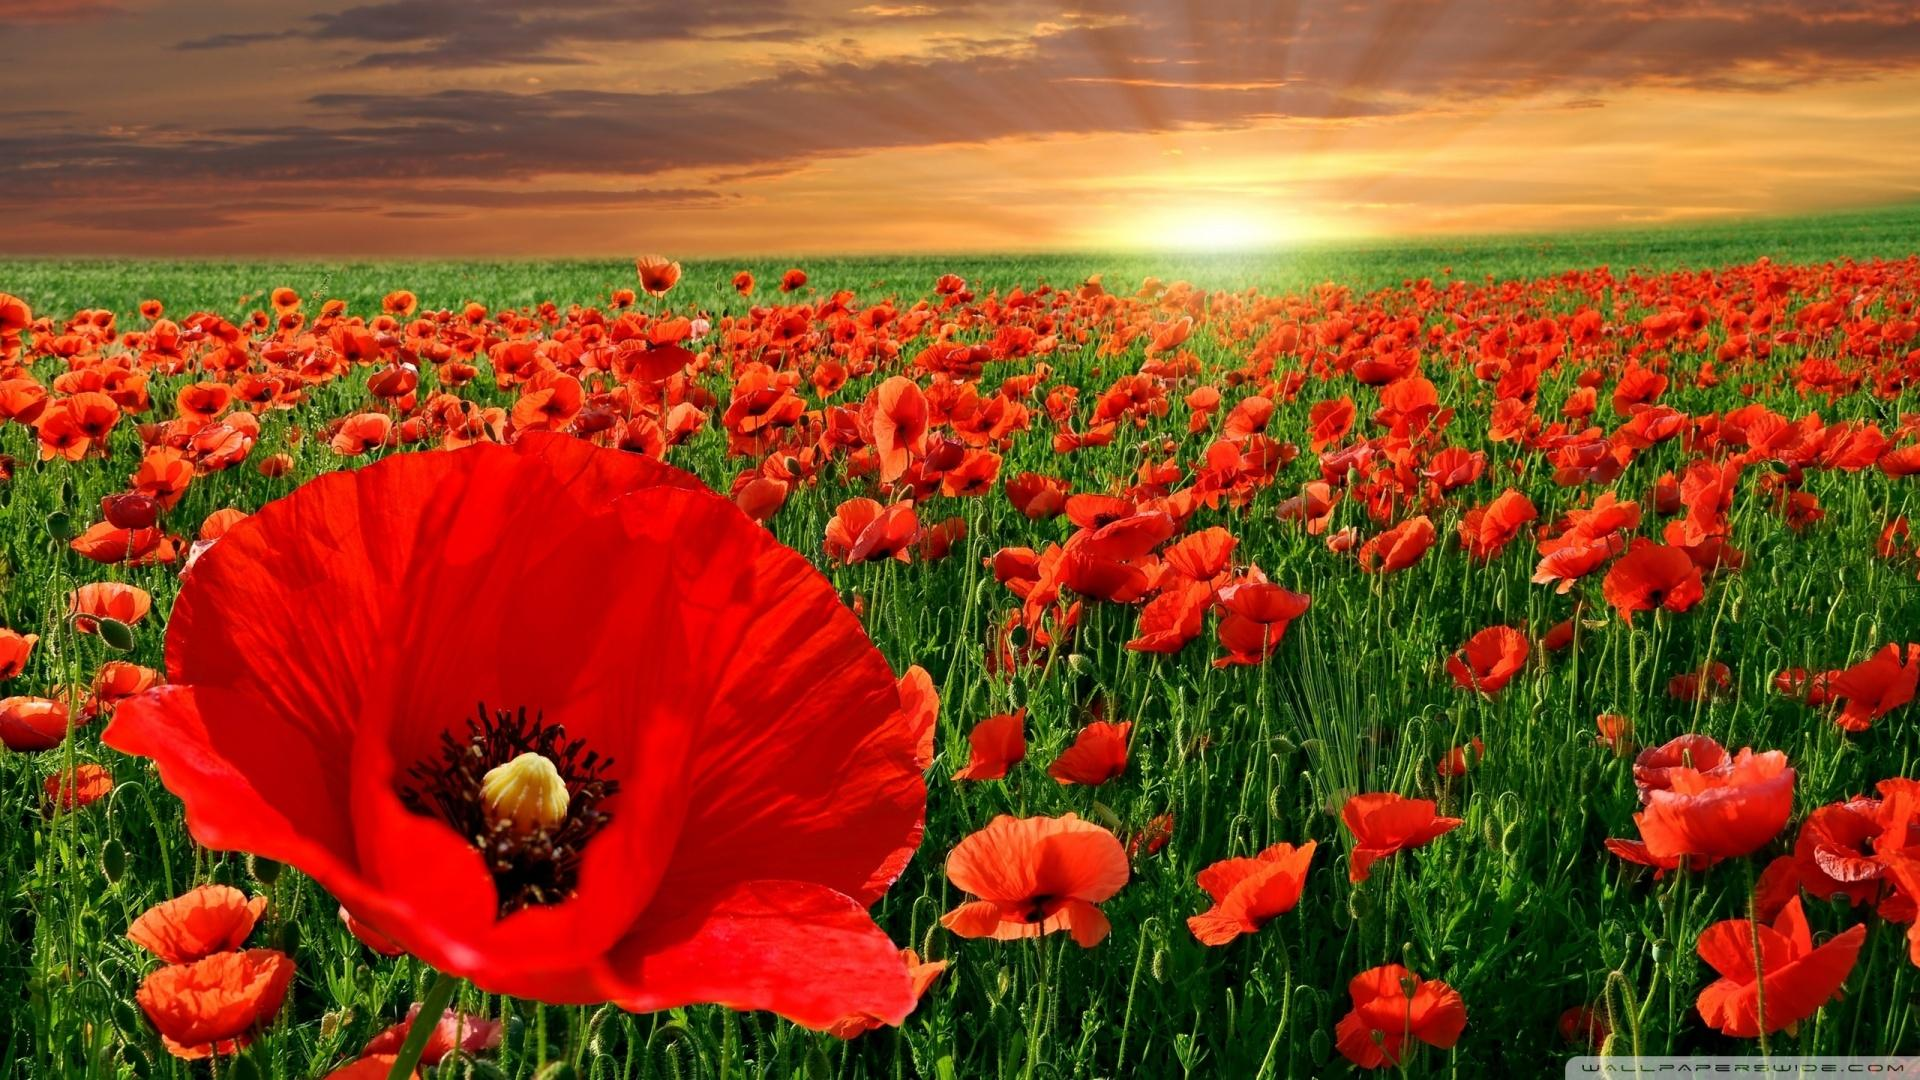 Sunset Over A Field Of Poppies Wallpaper #28190 - Resolution 1920x1080 px